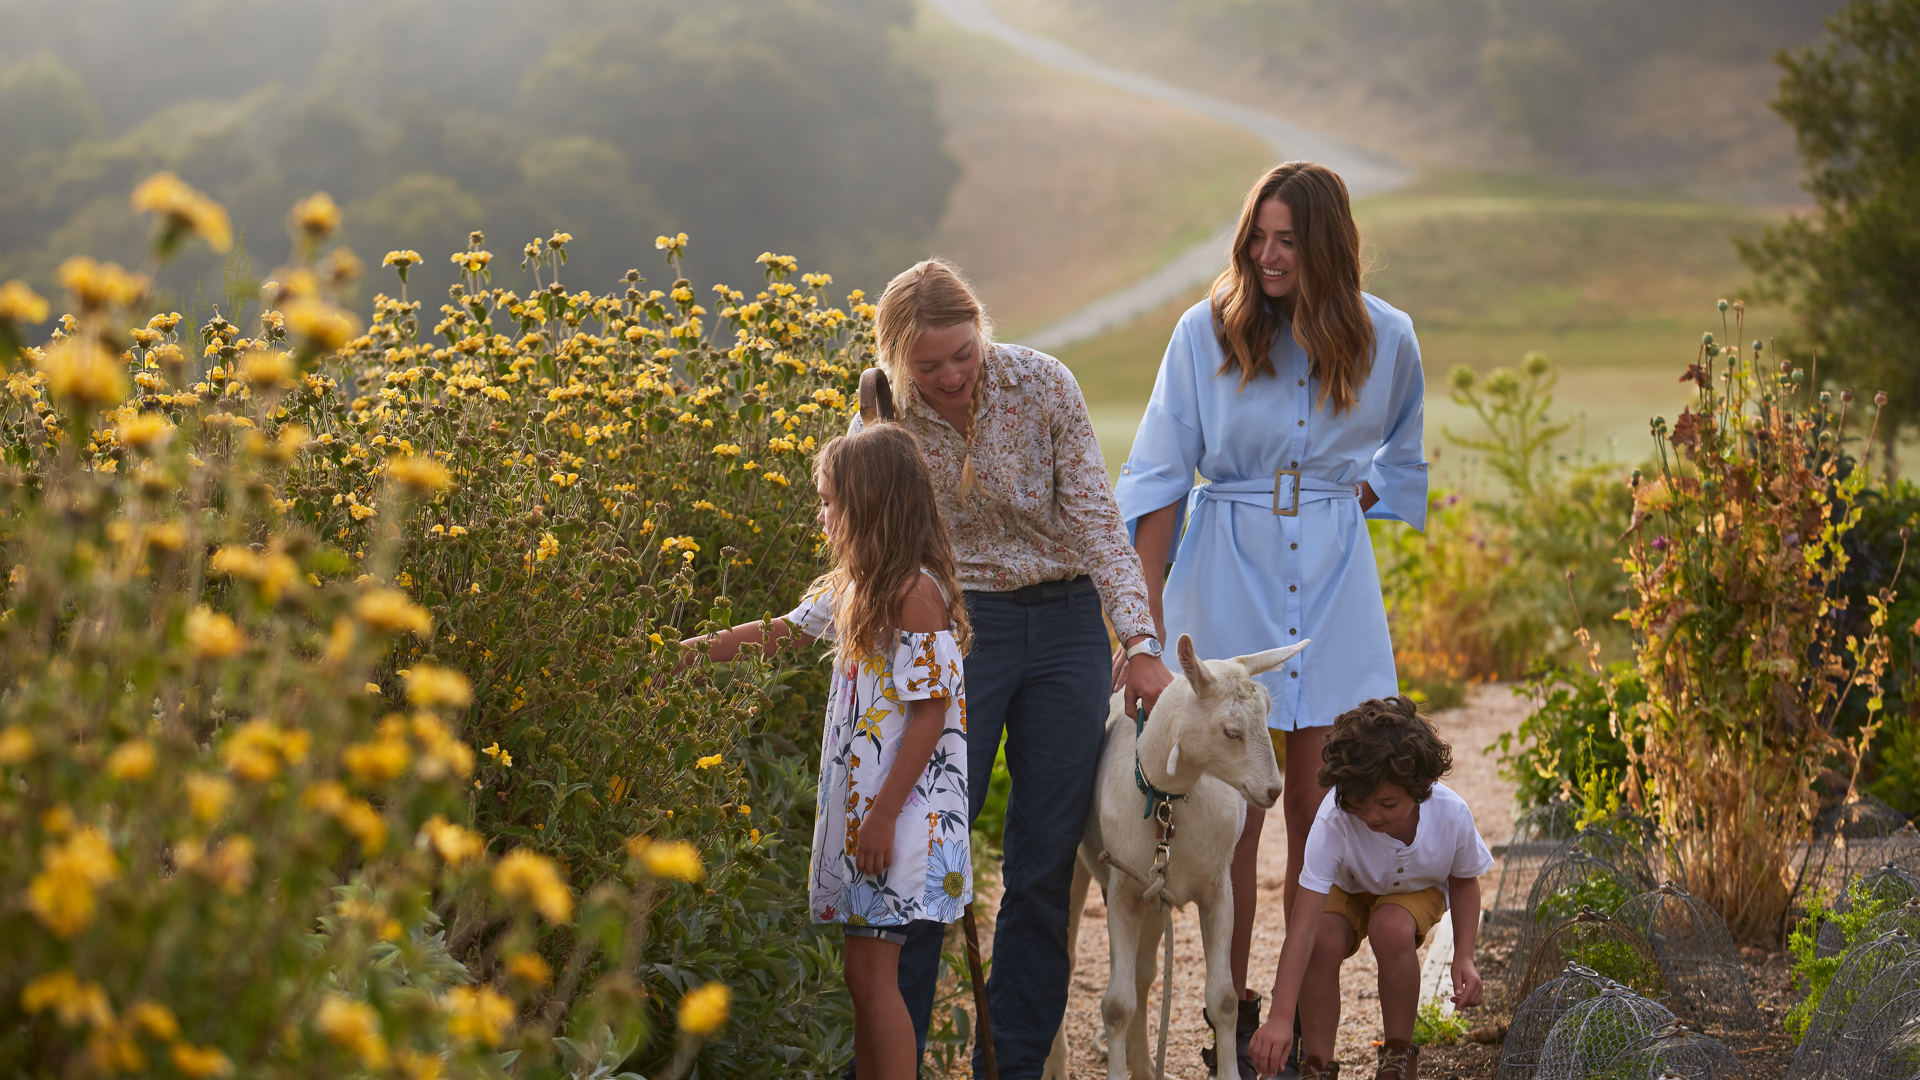 Carmel Valley Ranch_Lifestyle_Organic Garden_Goat Walk_GJ_1234 2_v1_current